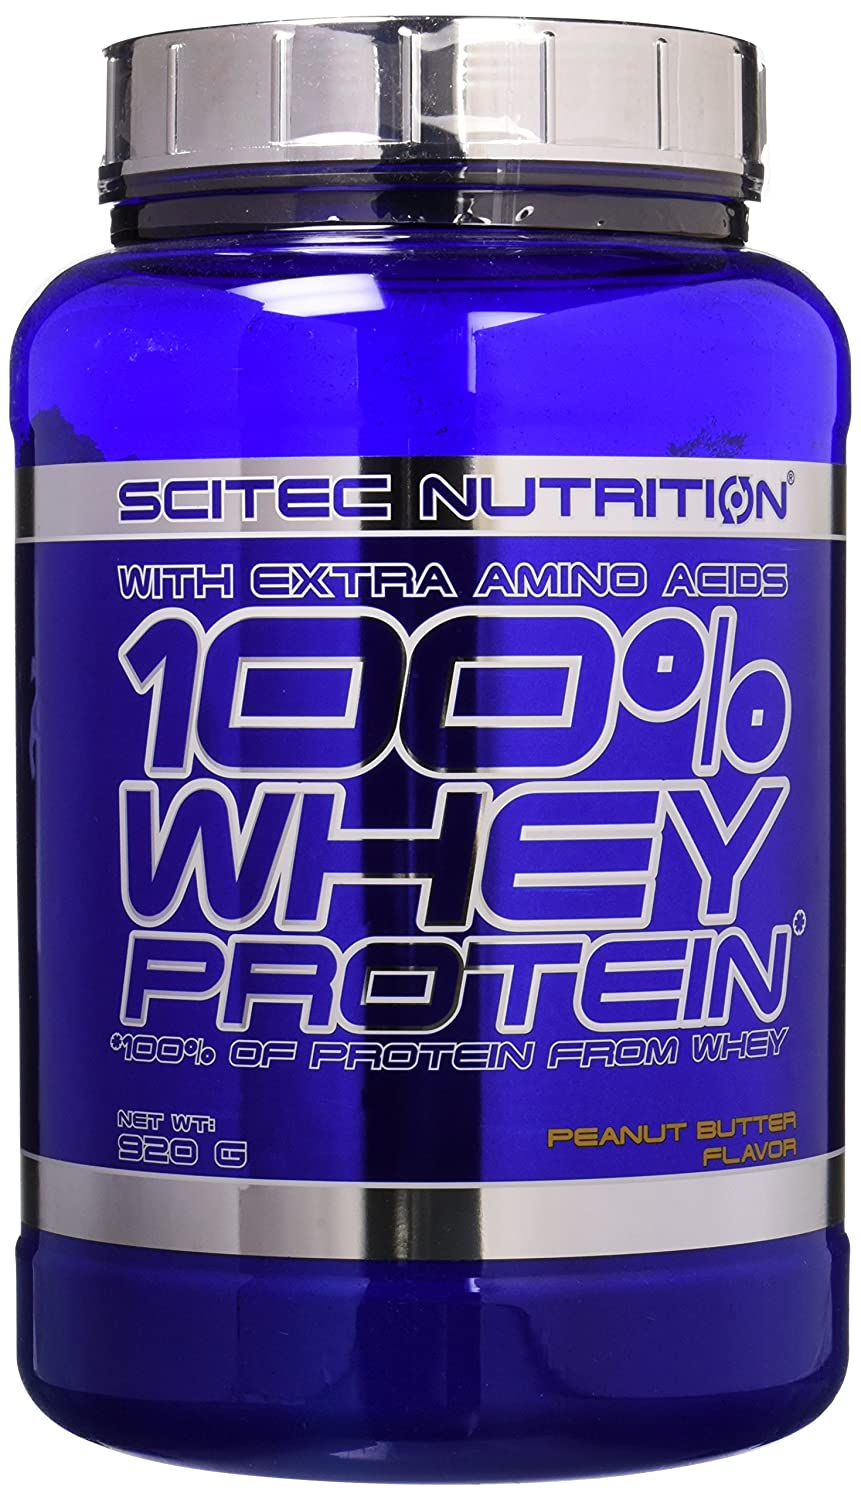 Amazon.com: 100% whey protein - 2 lbs - Peanut Butter - Scitec nutrition: Health & Personal Care